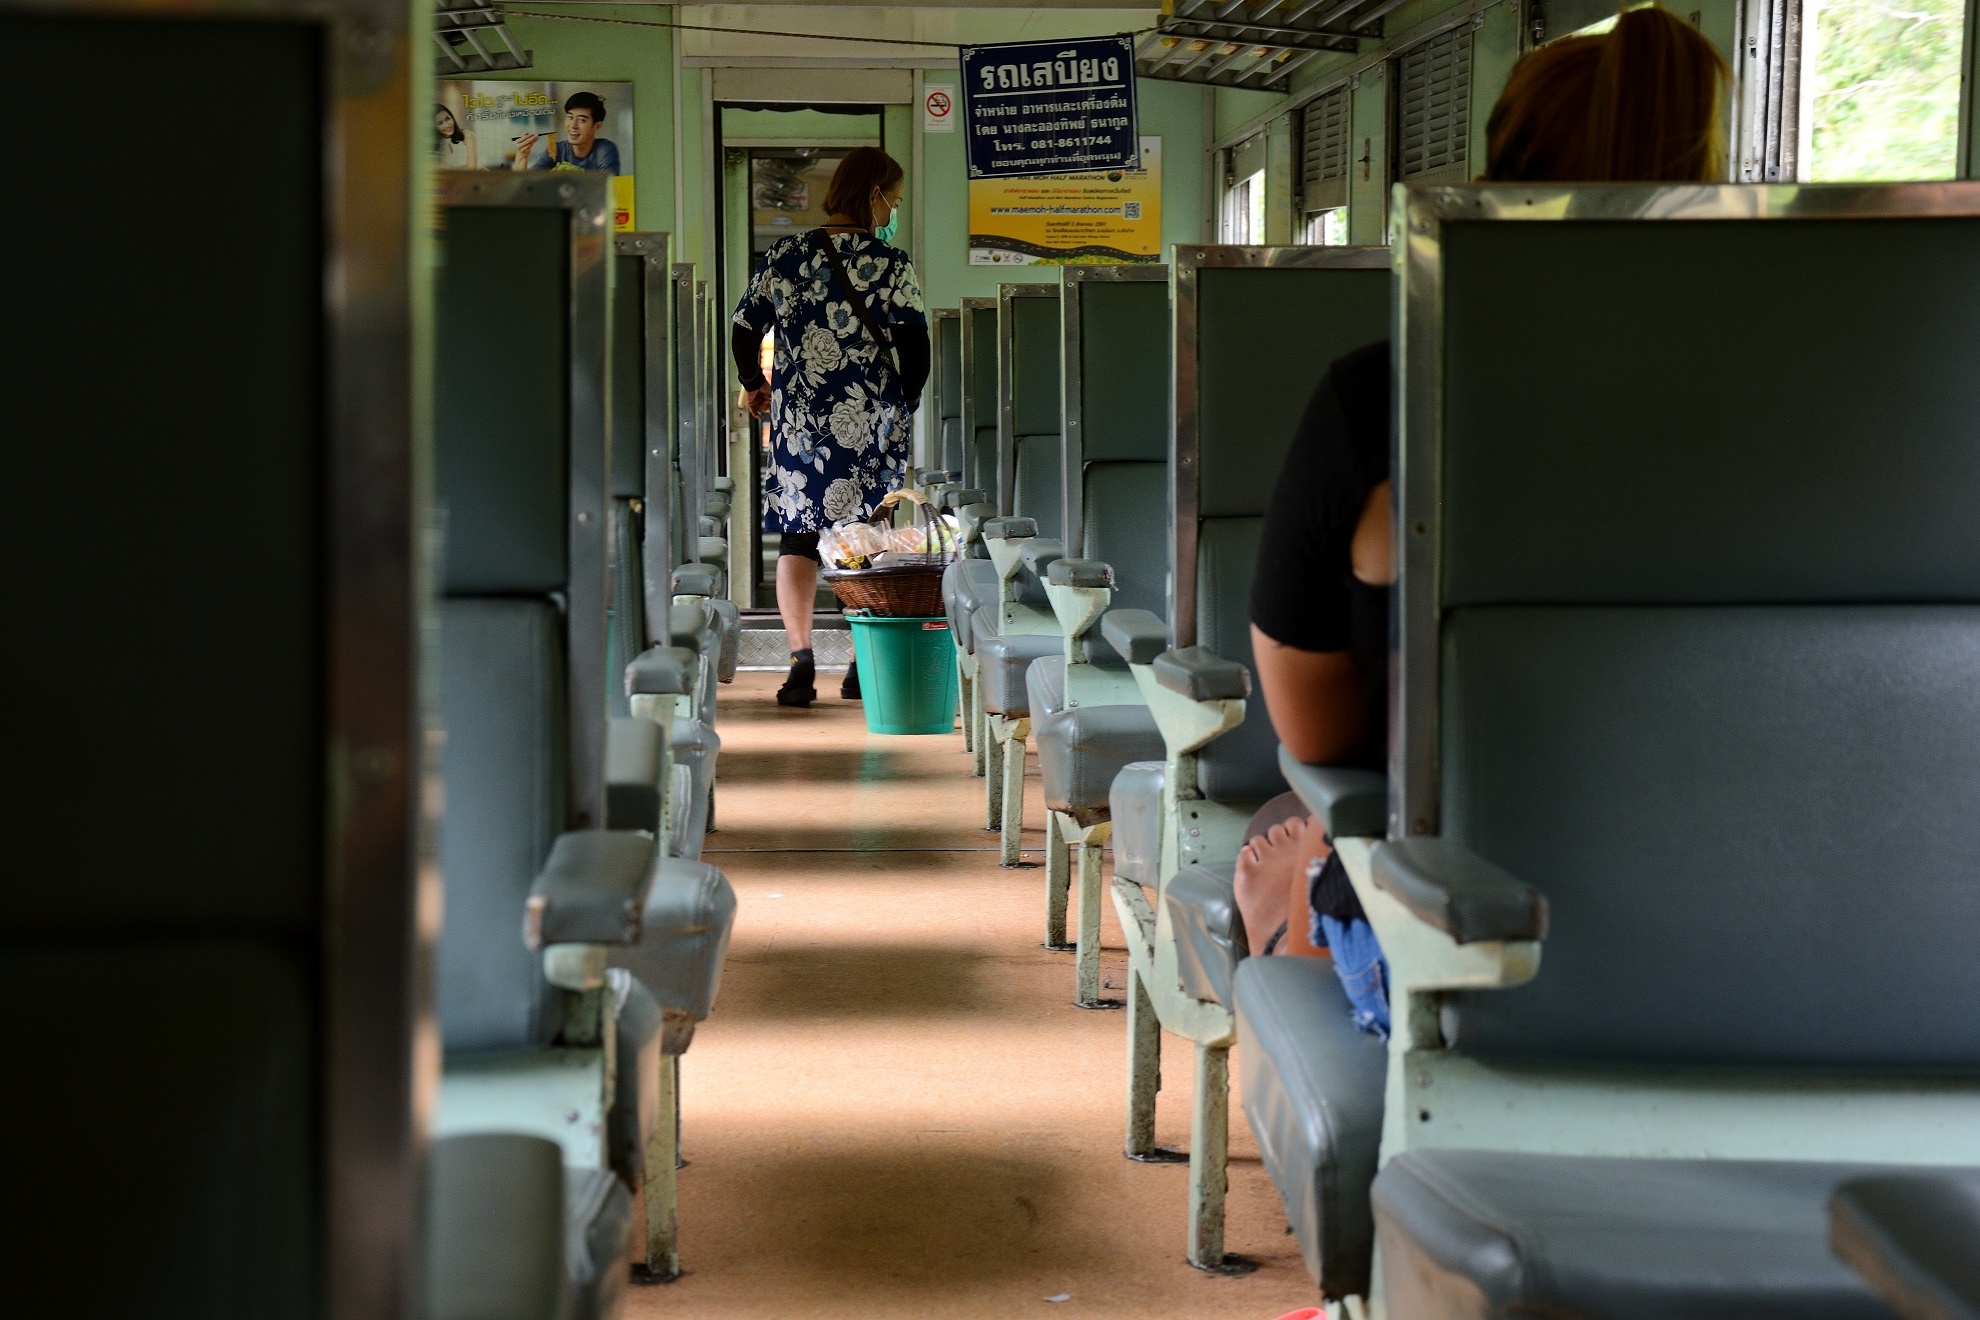 3rd class carriage travelling between Bangkok and Pattaya